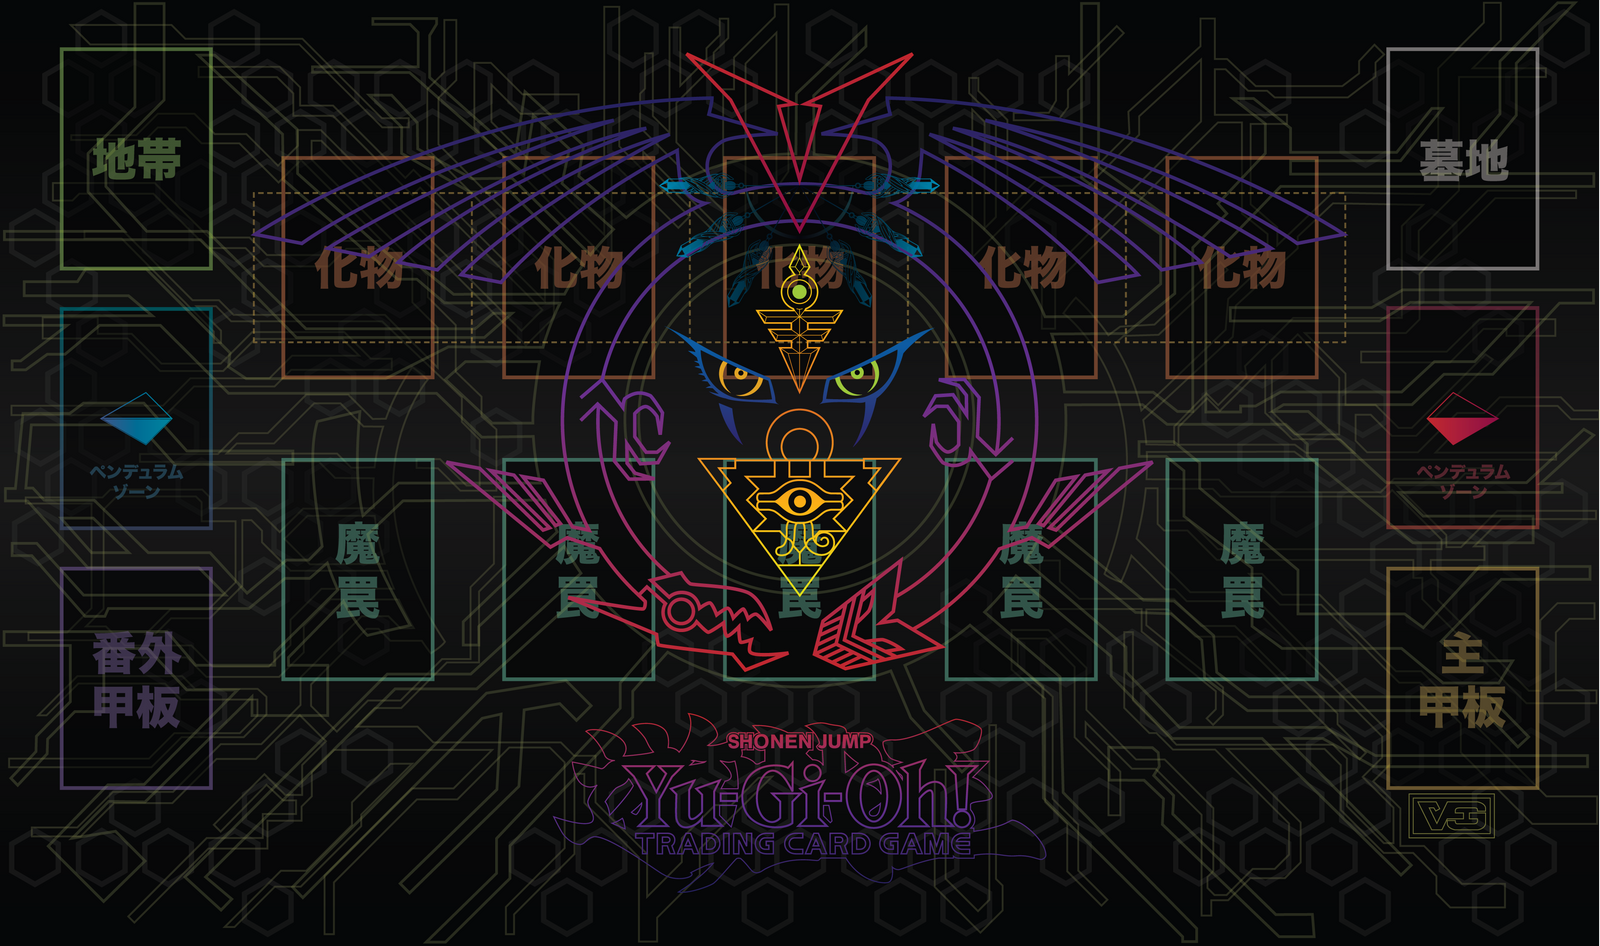 Yu gi oh playmat concept by teews666 on deviantart Oh design